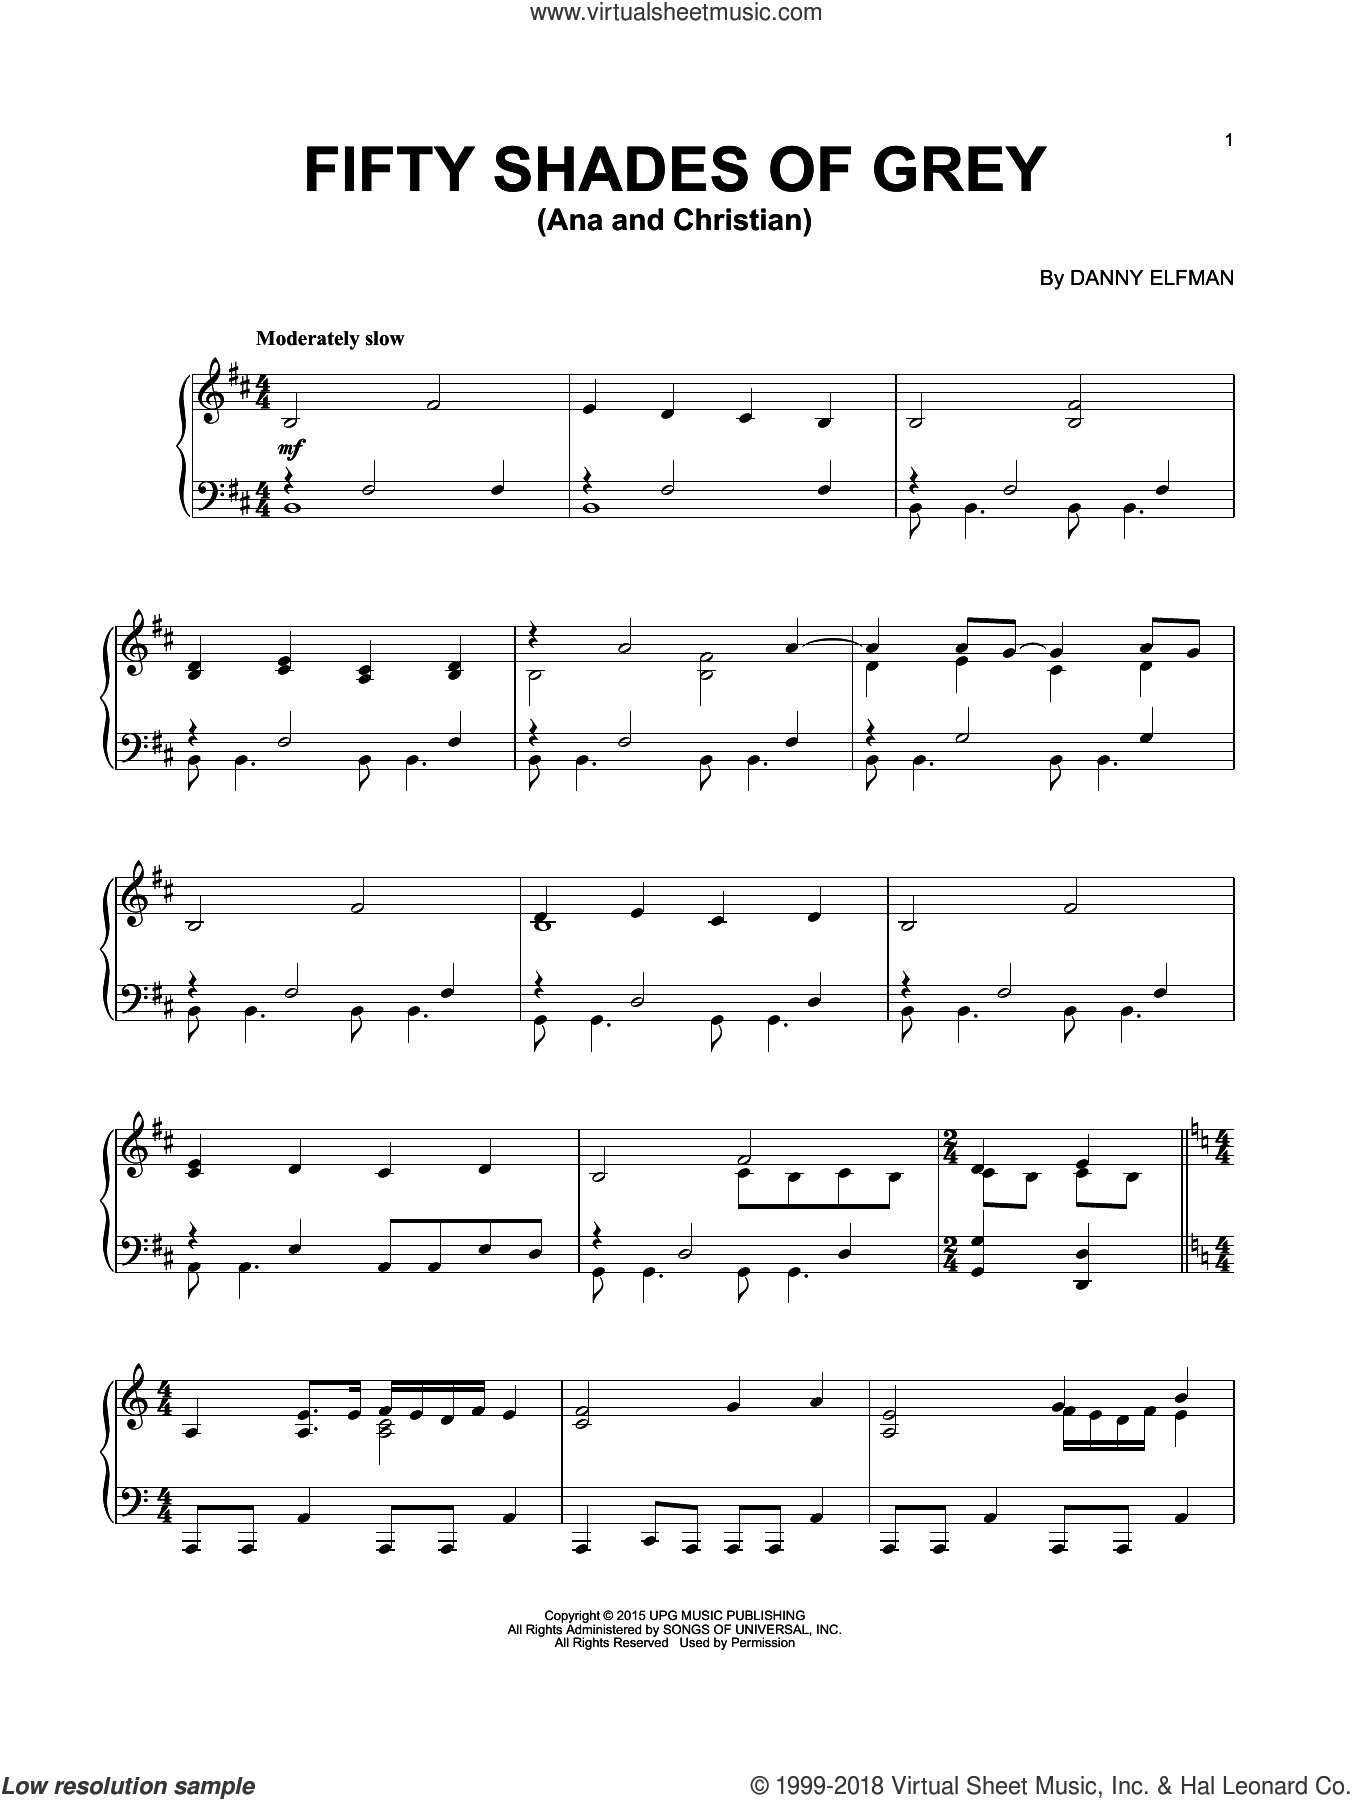 Ana And Christian sheet music for piano solo by Danny Elfman, intermediate skill level